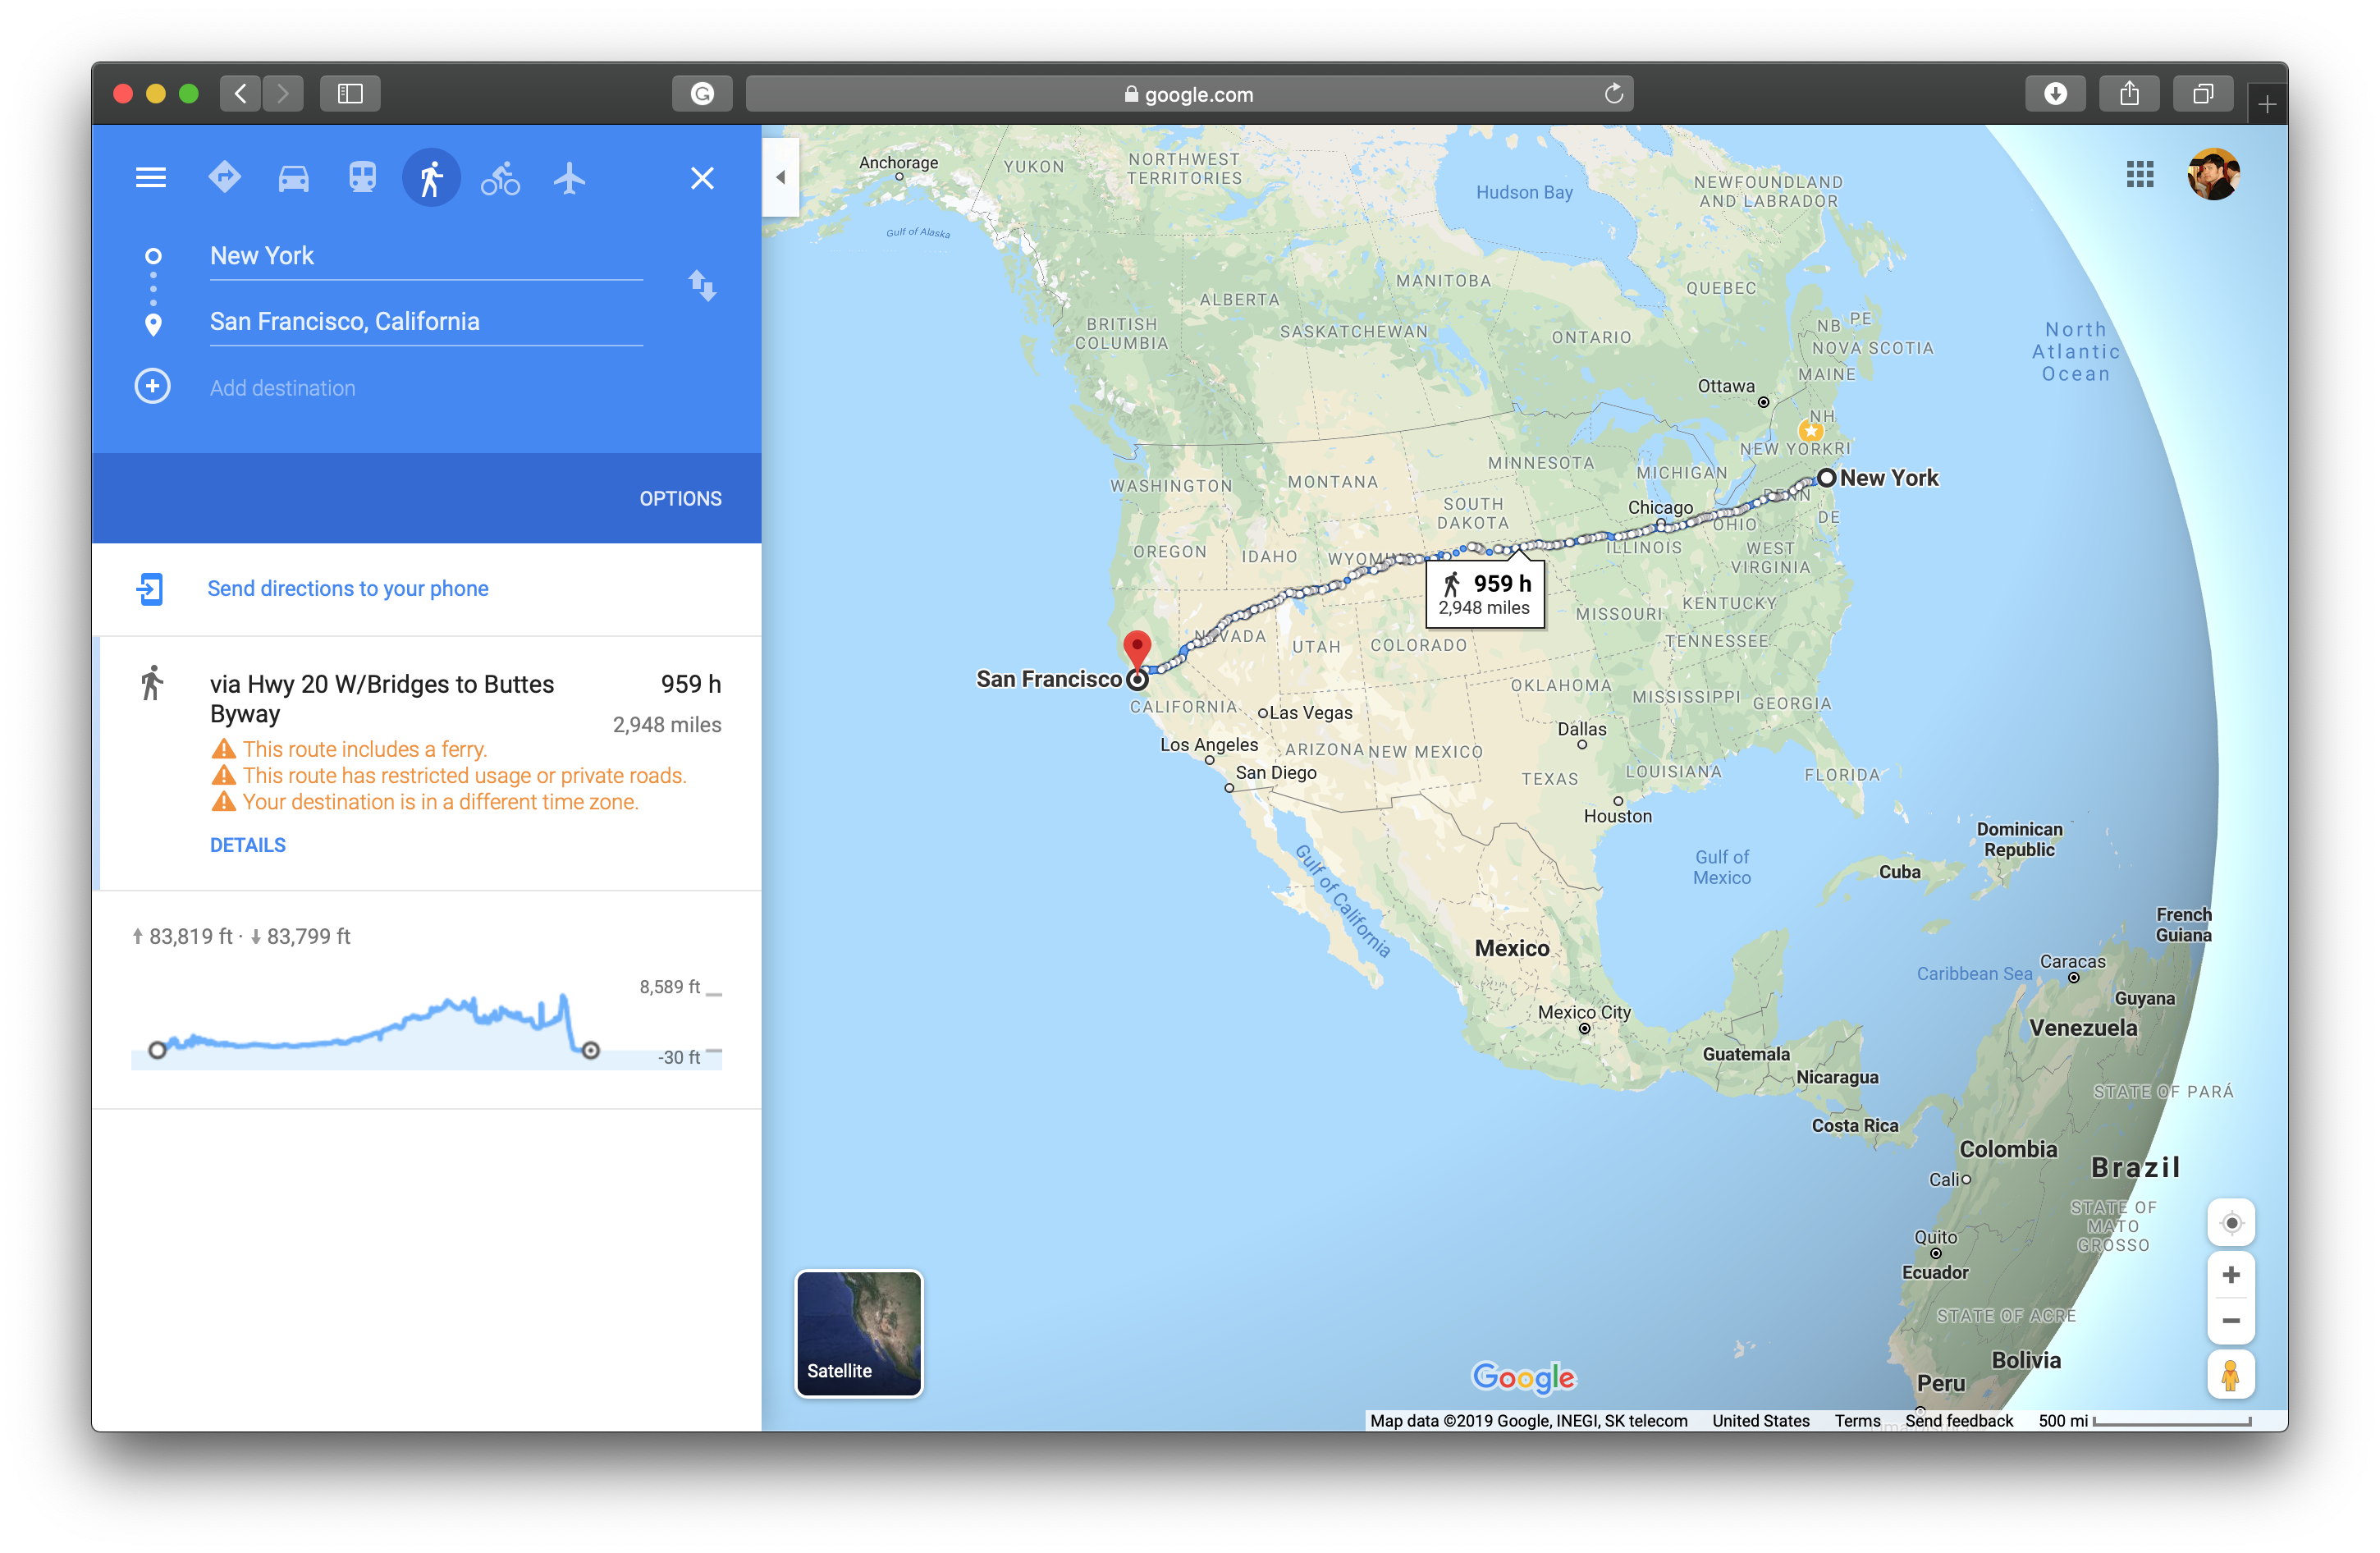 Walking directions from NY to SF via Google Maps